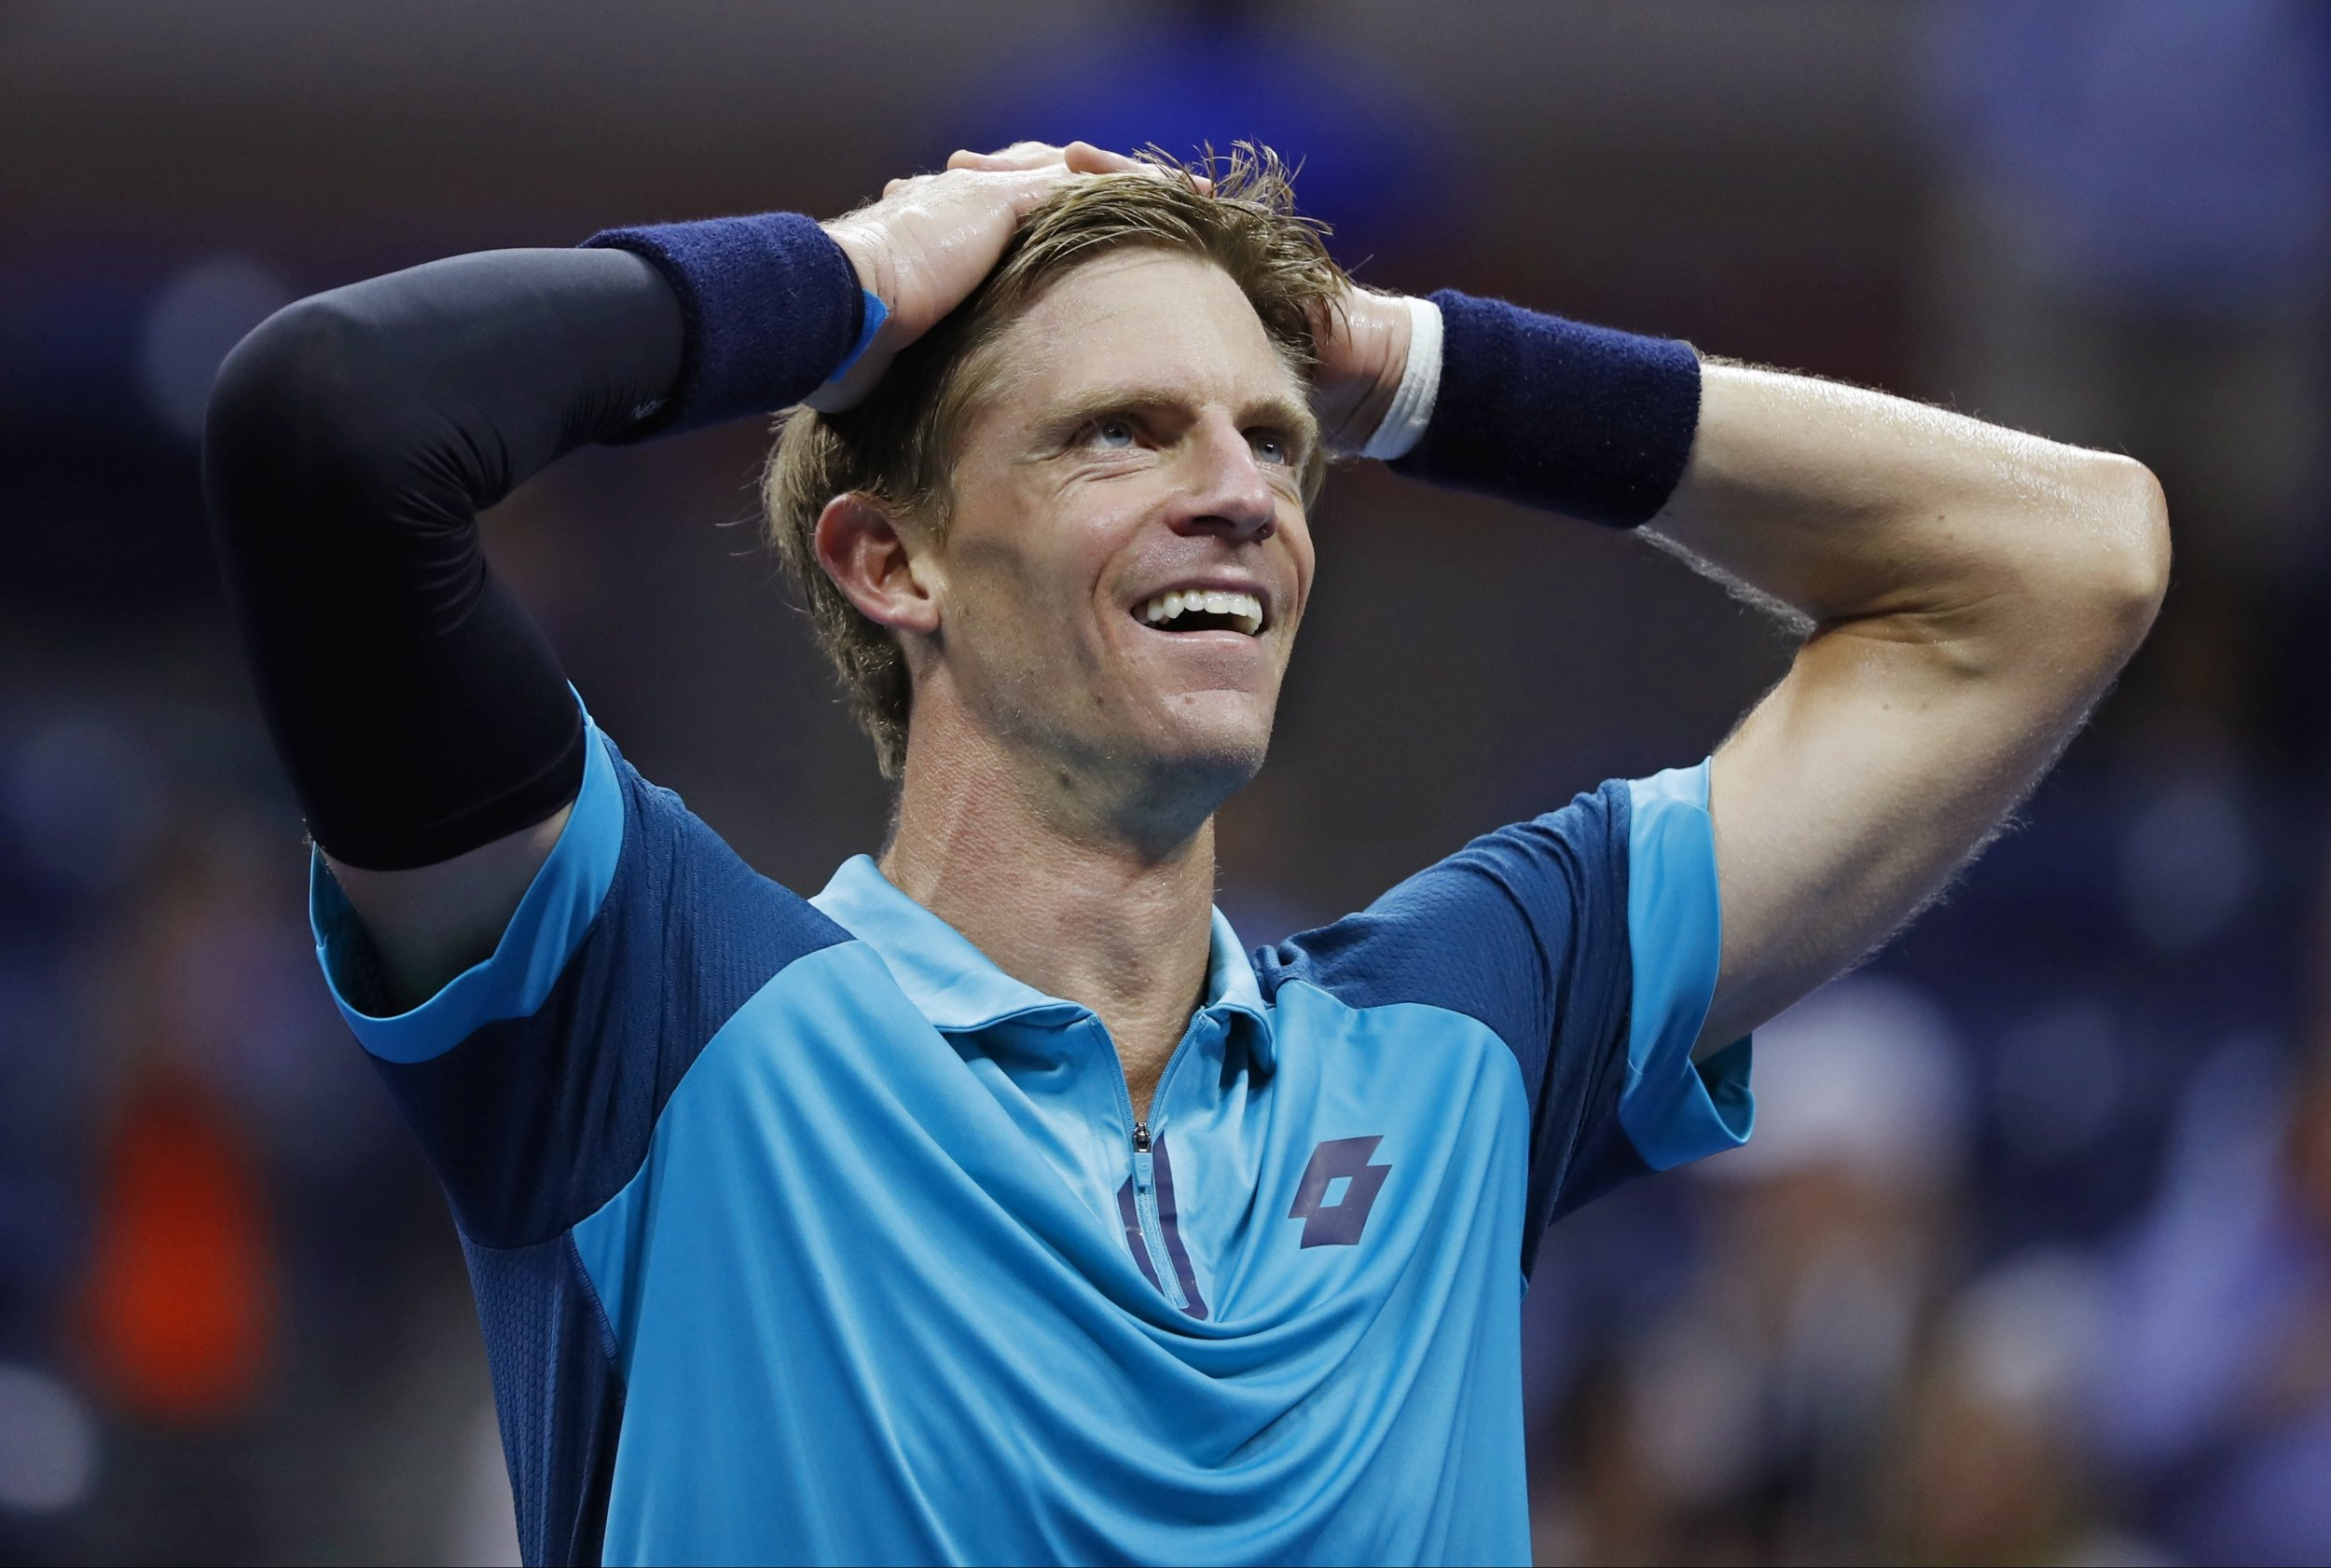 Rafael Nadal hails inspirational Kevin Anderson ahead of US Open final